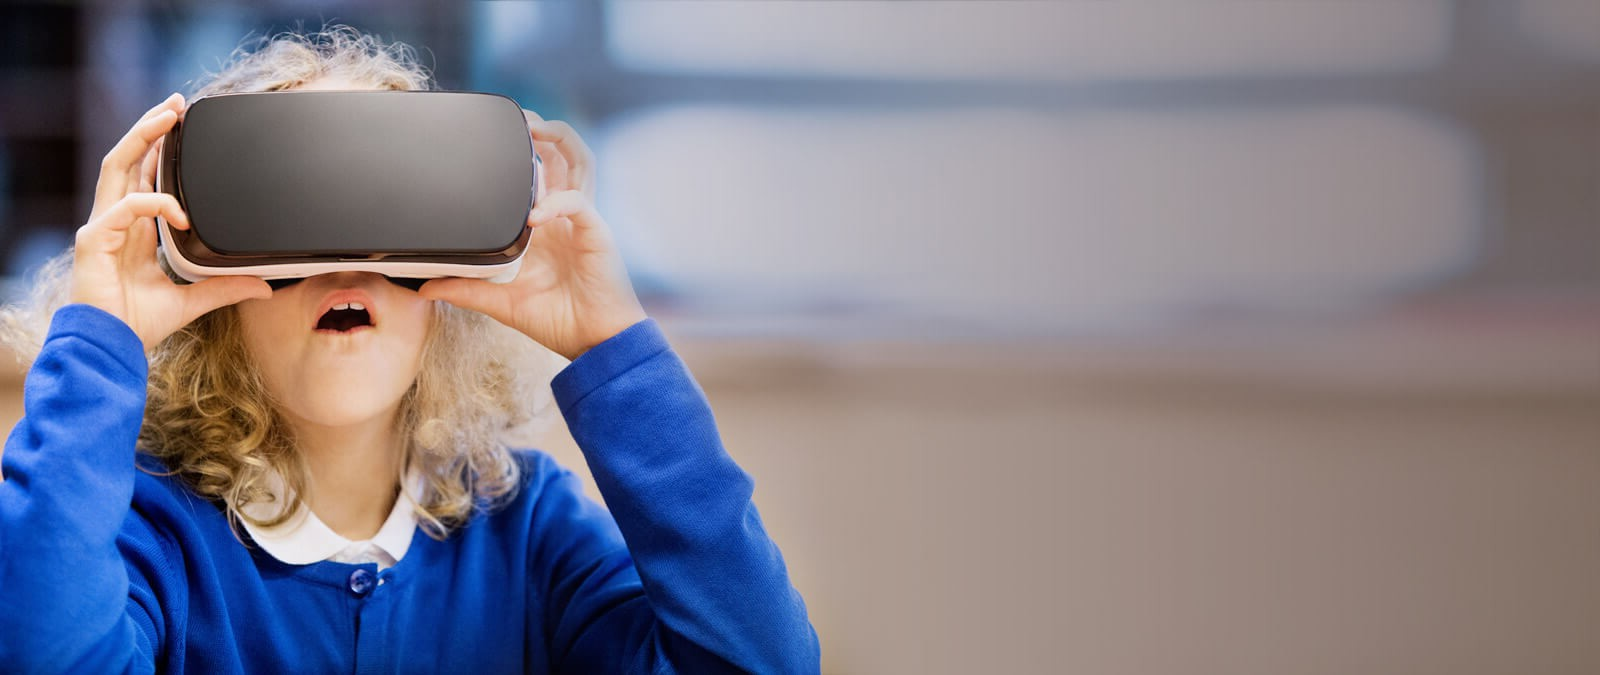 tip top brain student with vr headset